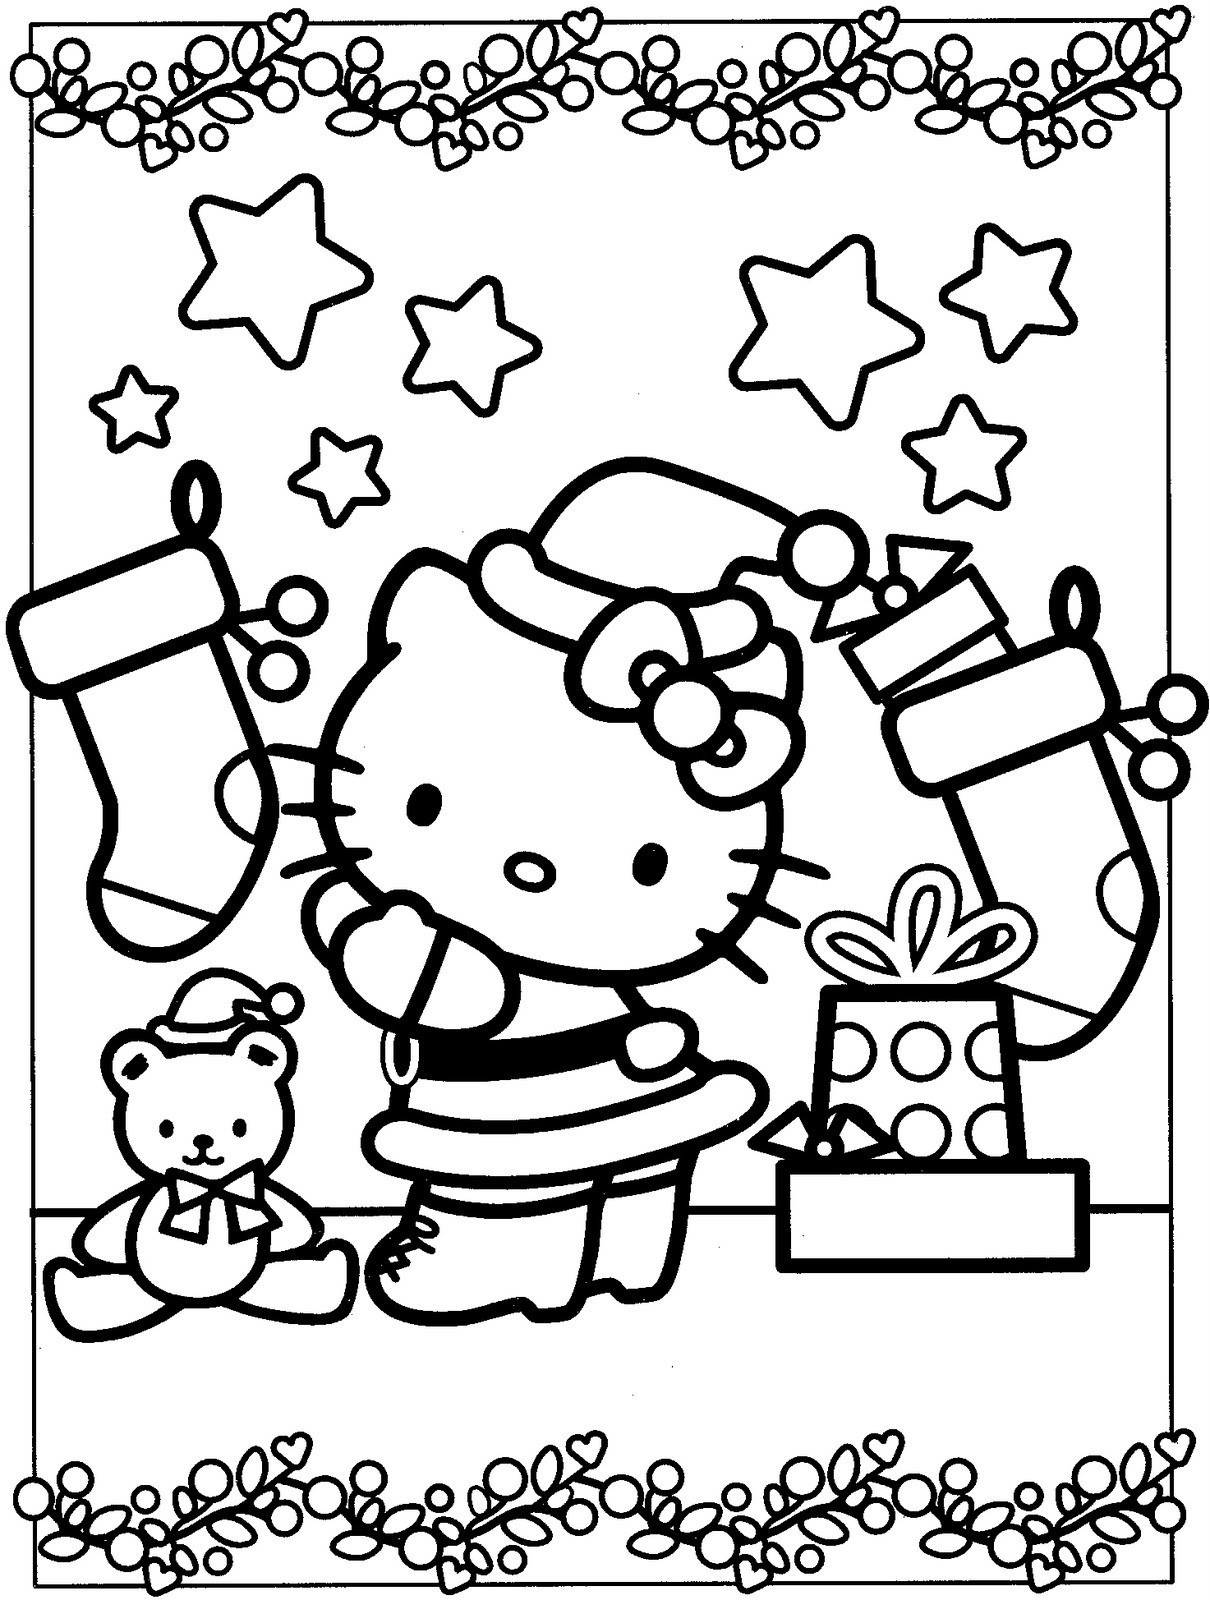 hello kitty christmas coloring pictures hello kitty christmas coloring pages 1 hello kitty forever kitty hello pictures coloring christmas